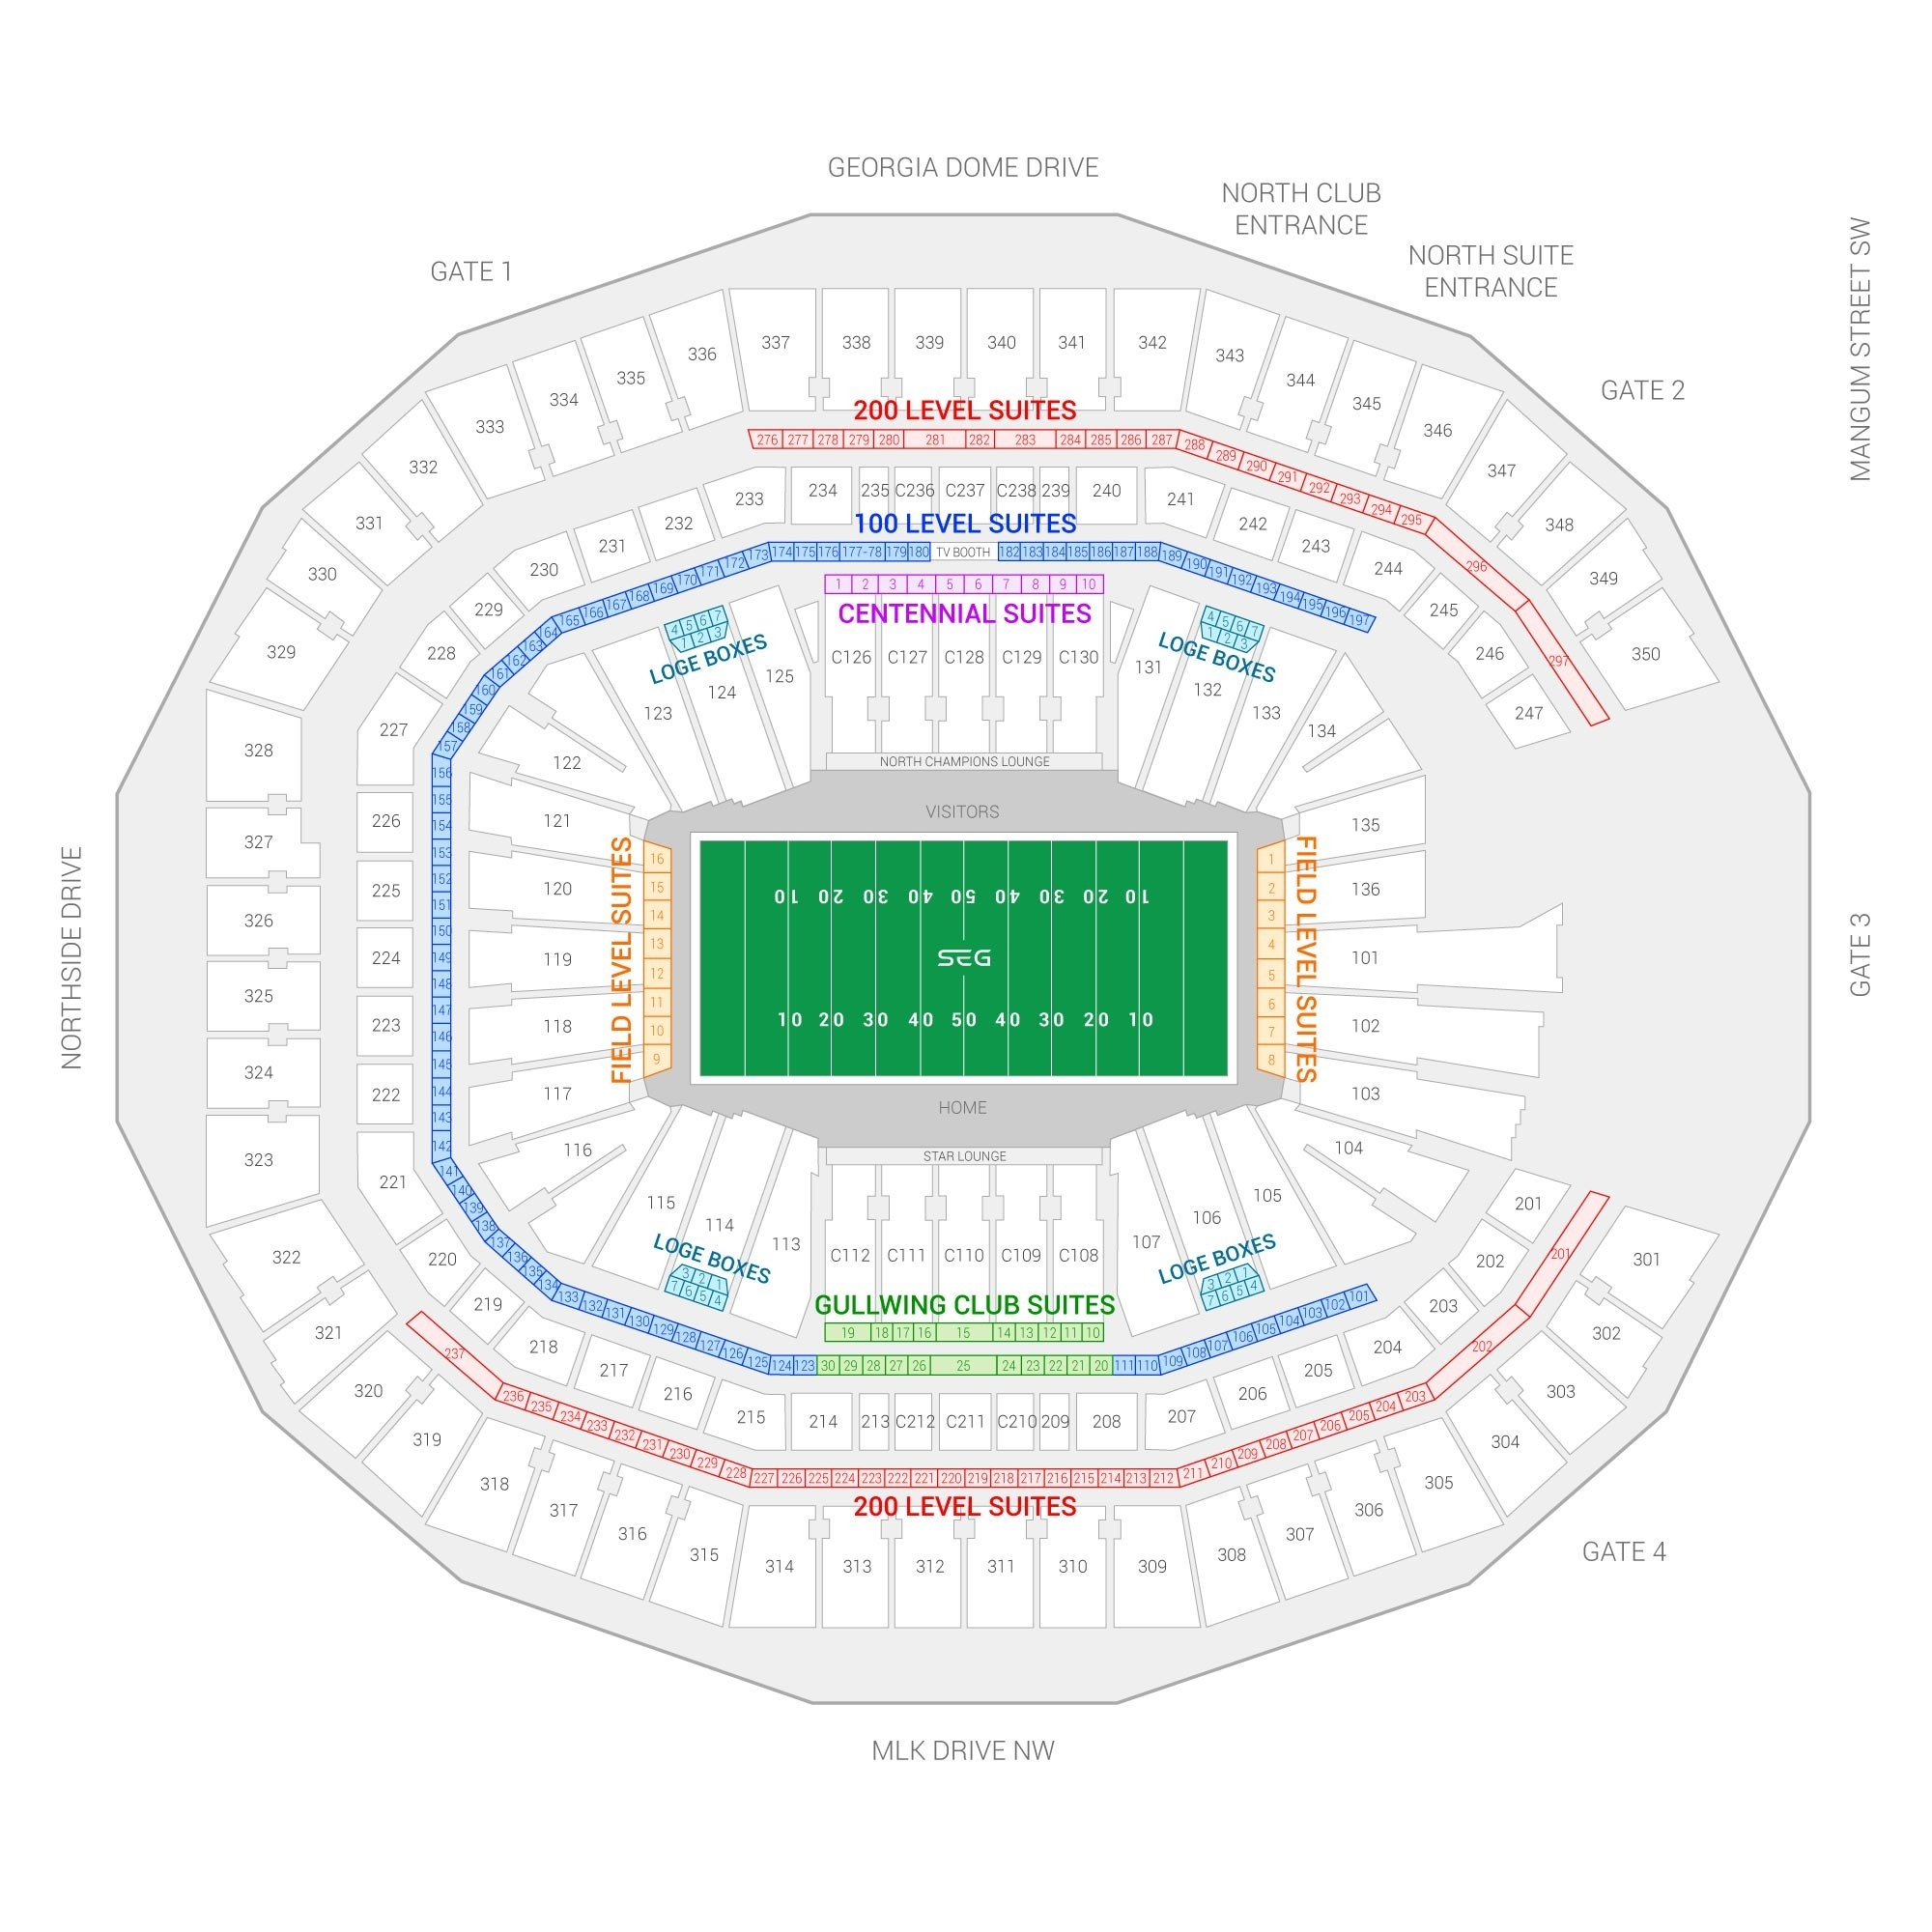 Super Bowl Liii Suite Rentals | Mercedes-Benz Stadium intended for Super Bowl Seat Map